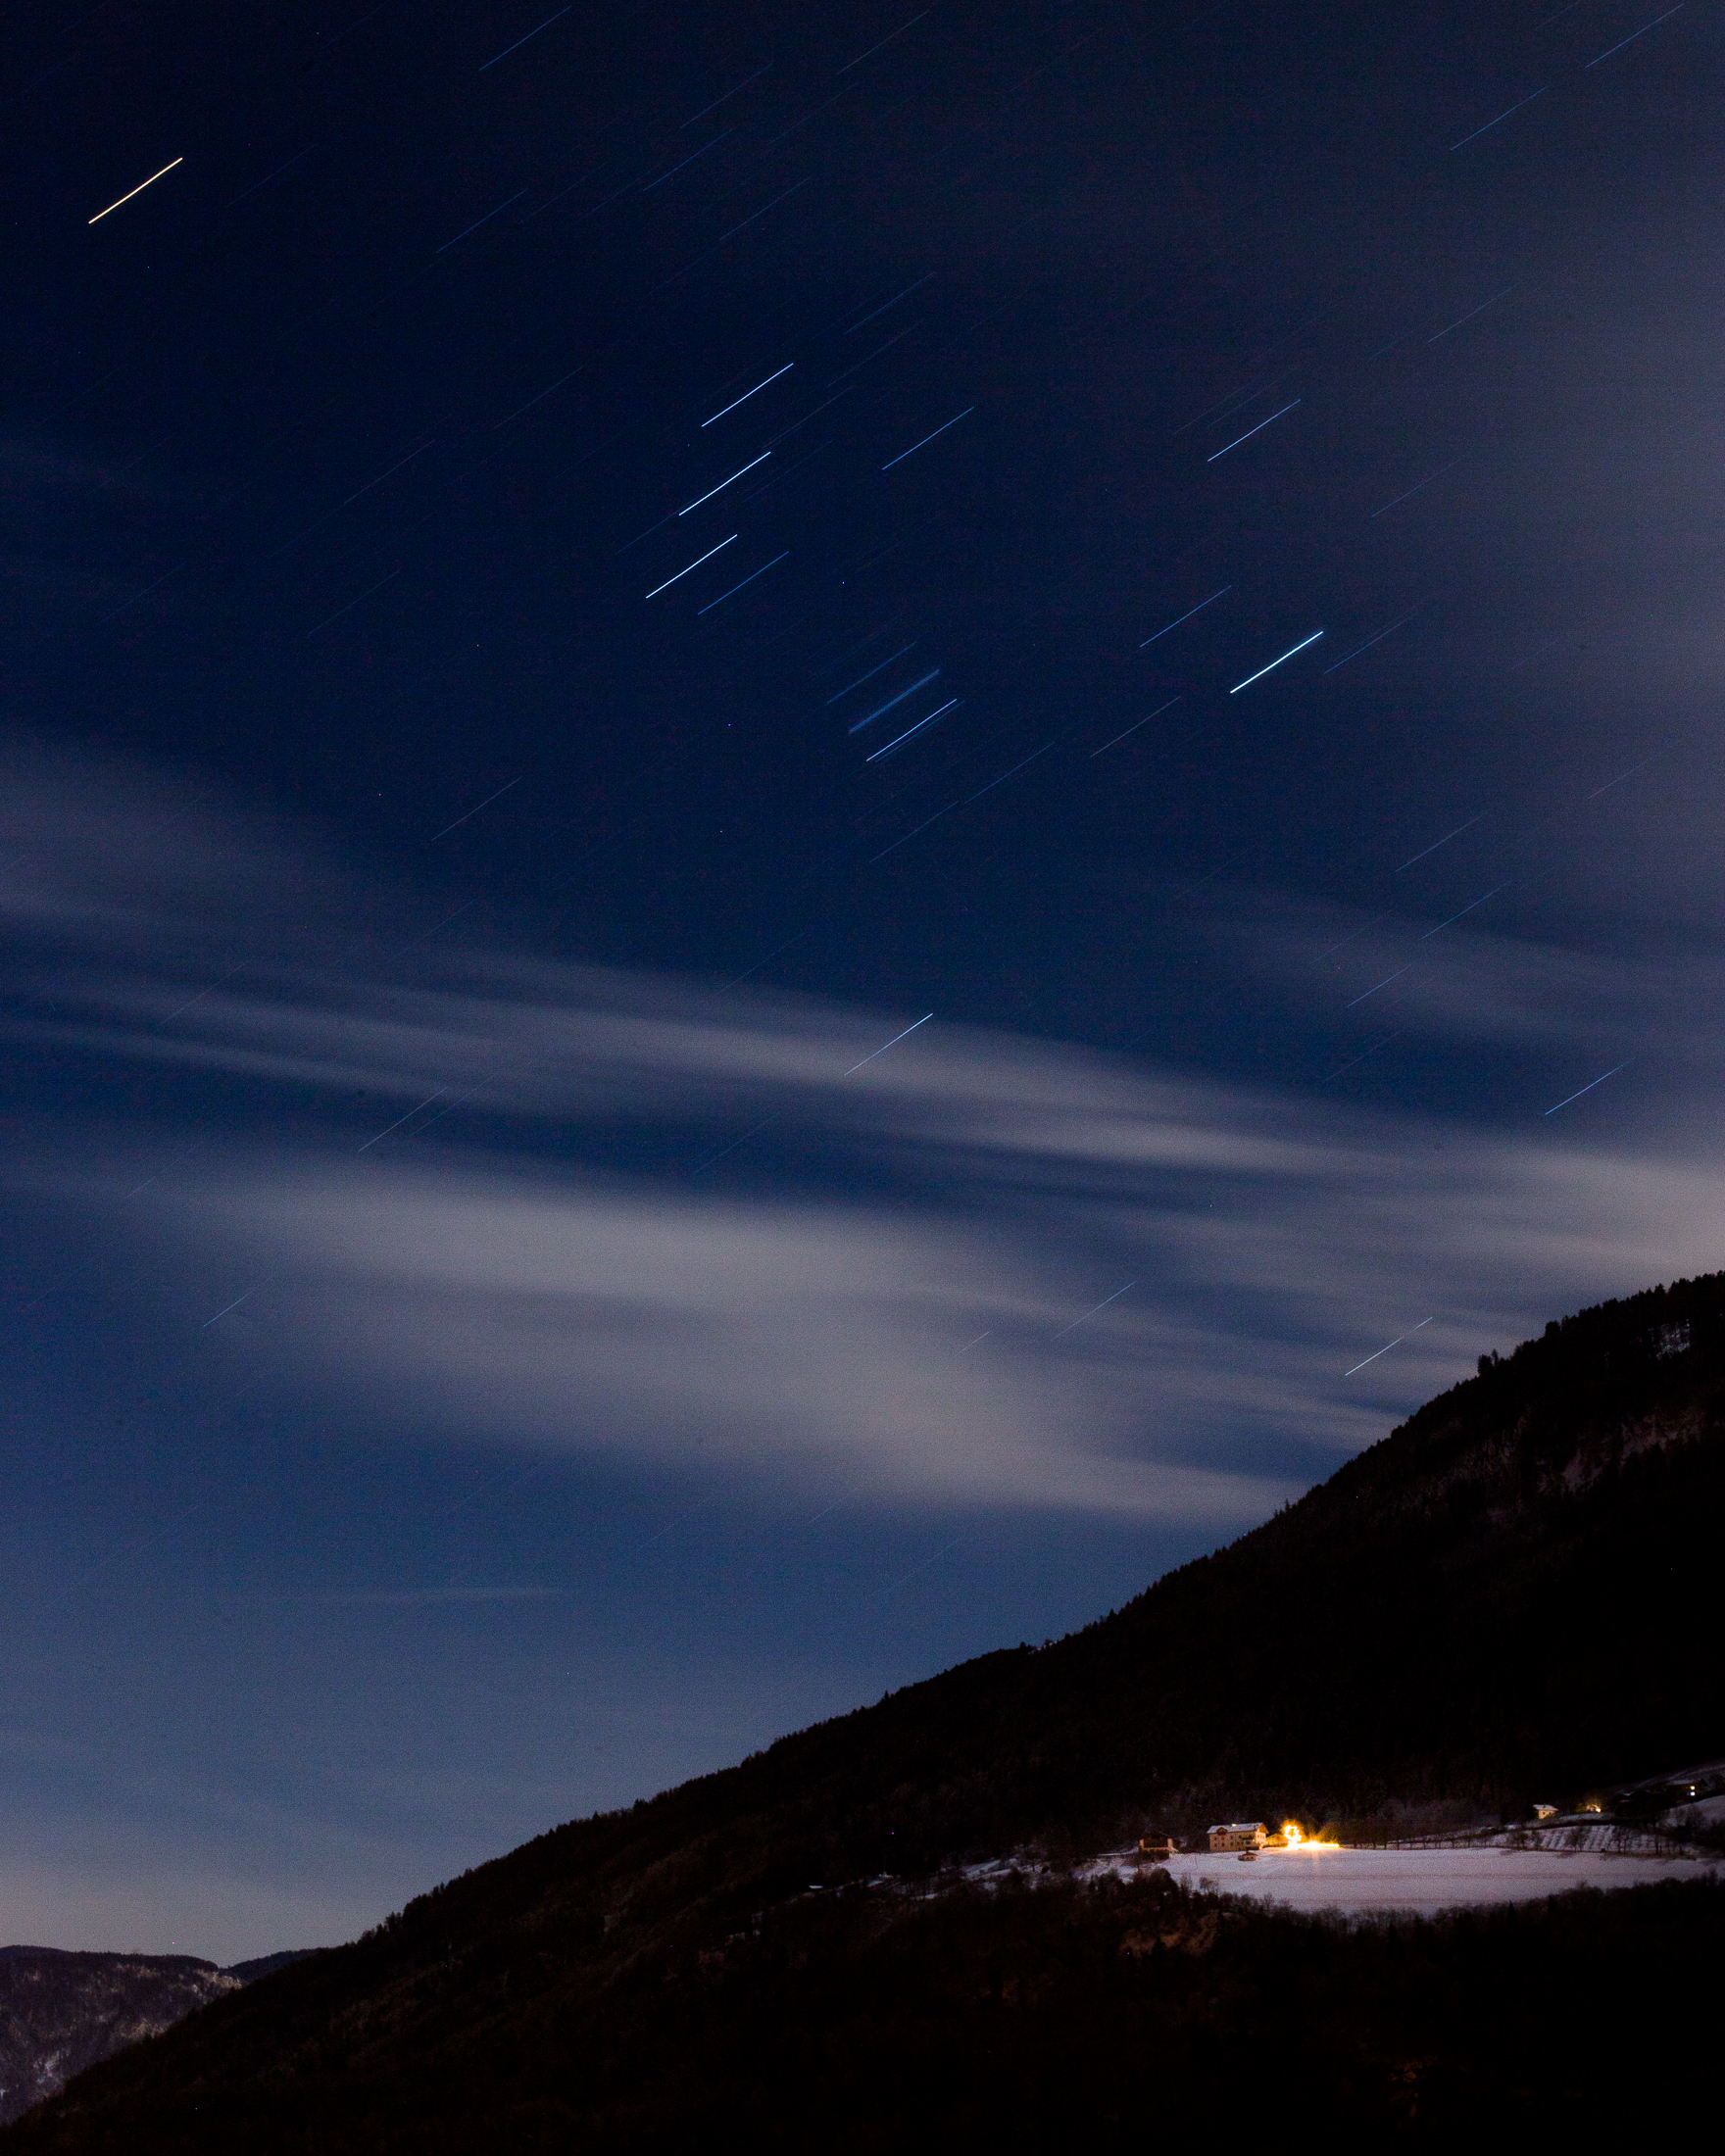 A long exposure for dramatic star trails. ISO 125. f/22. 400 seconds.